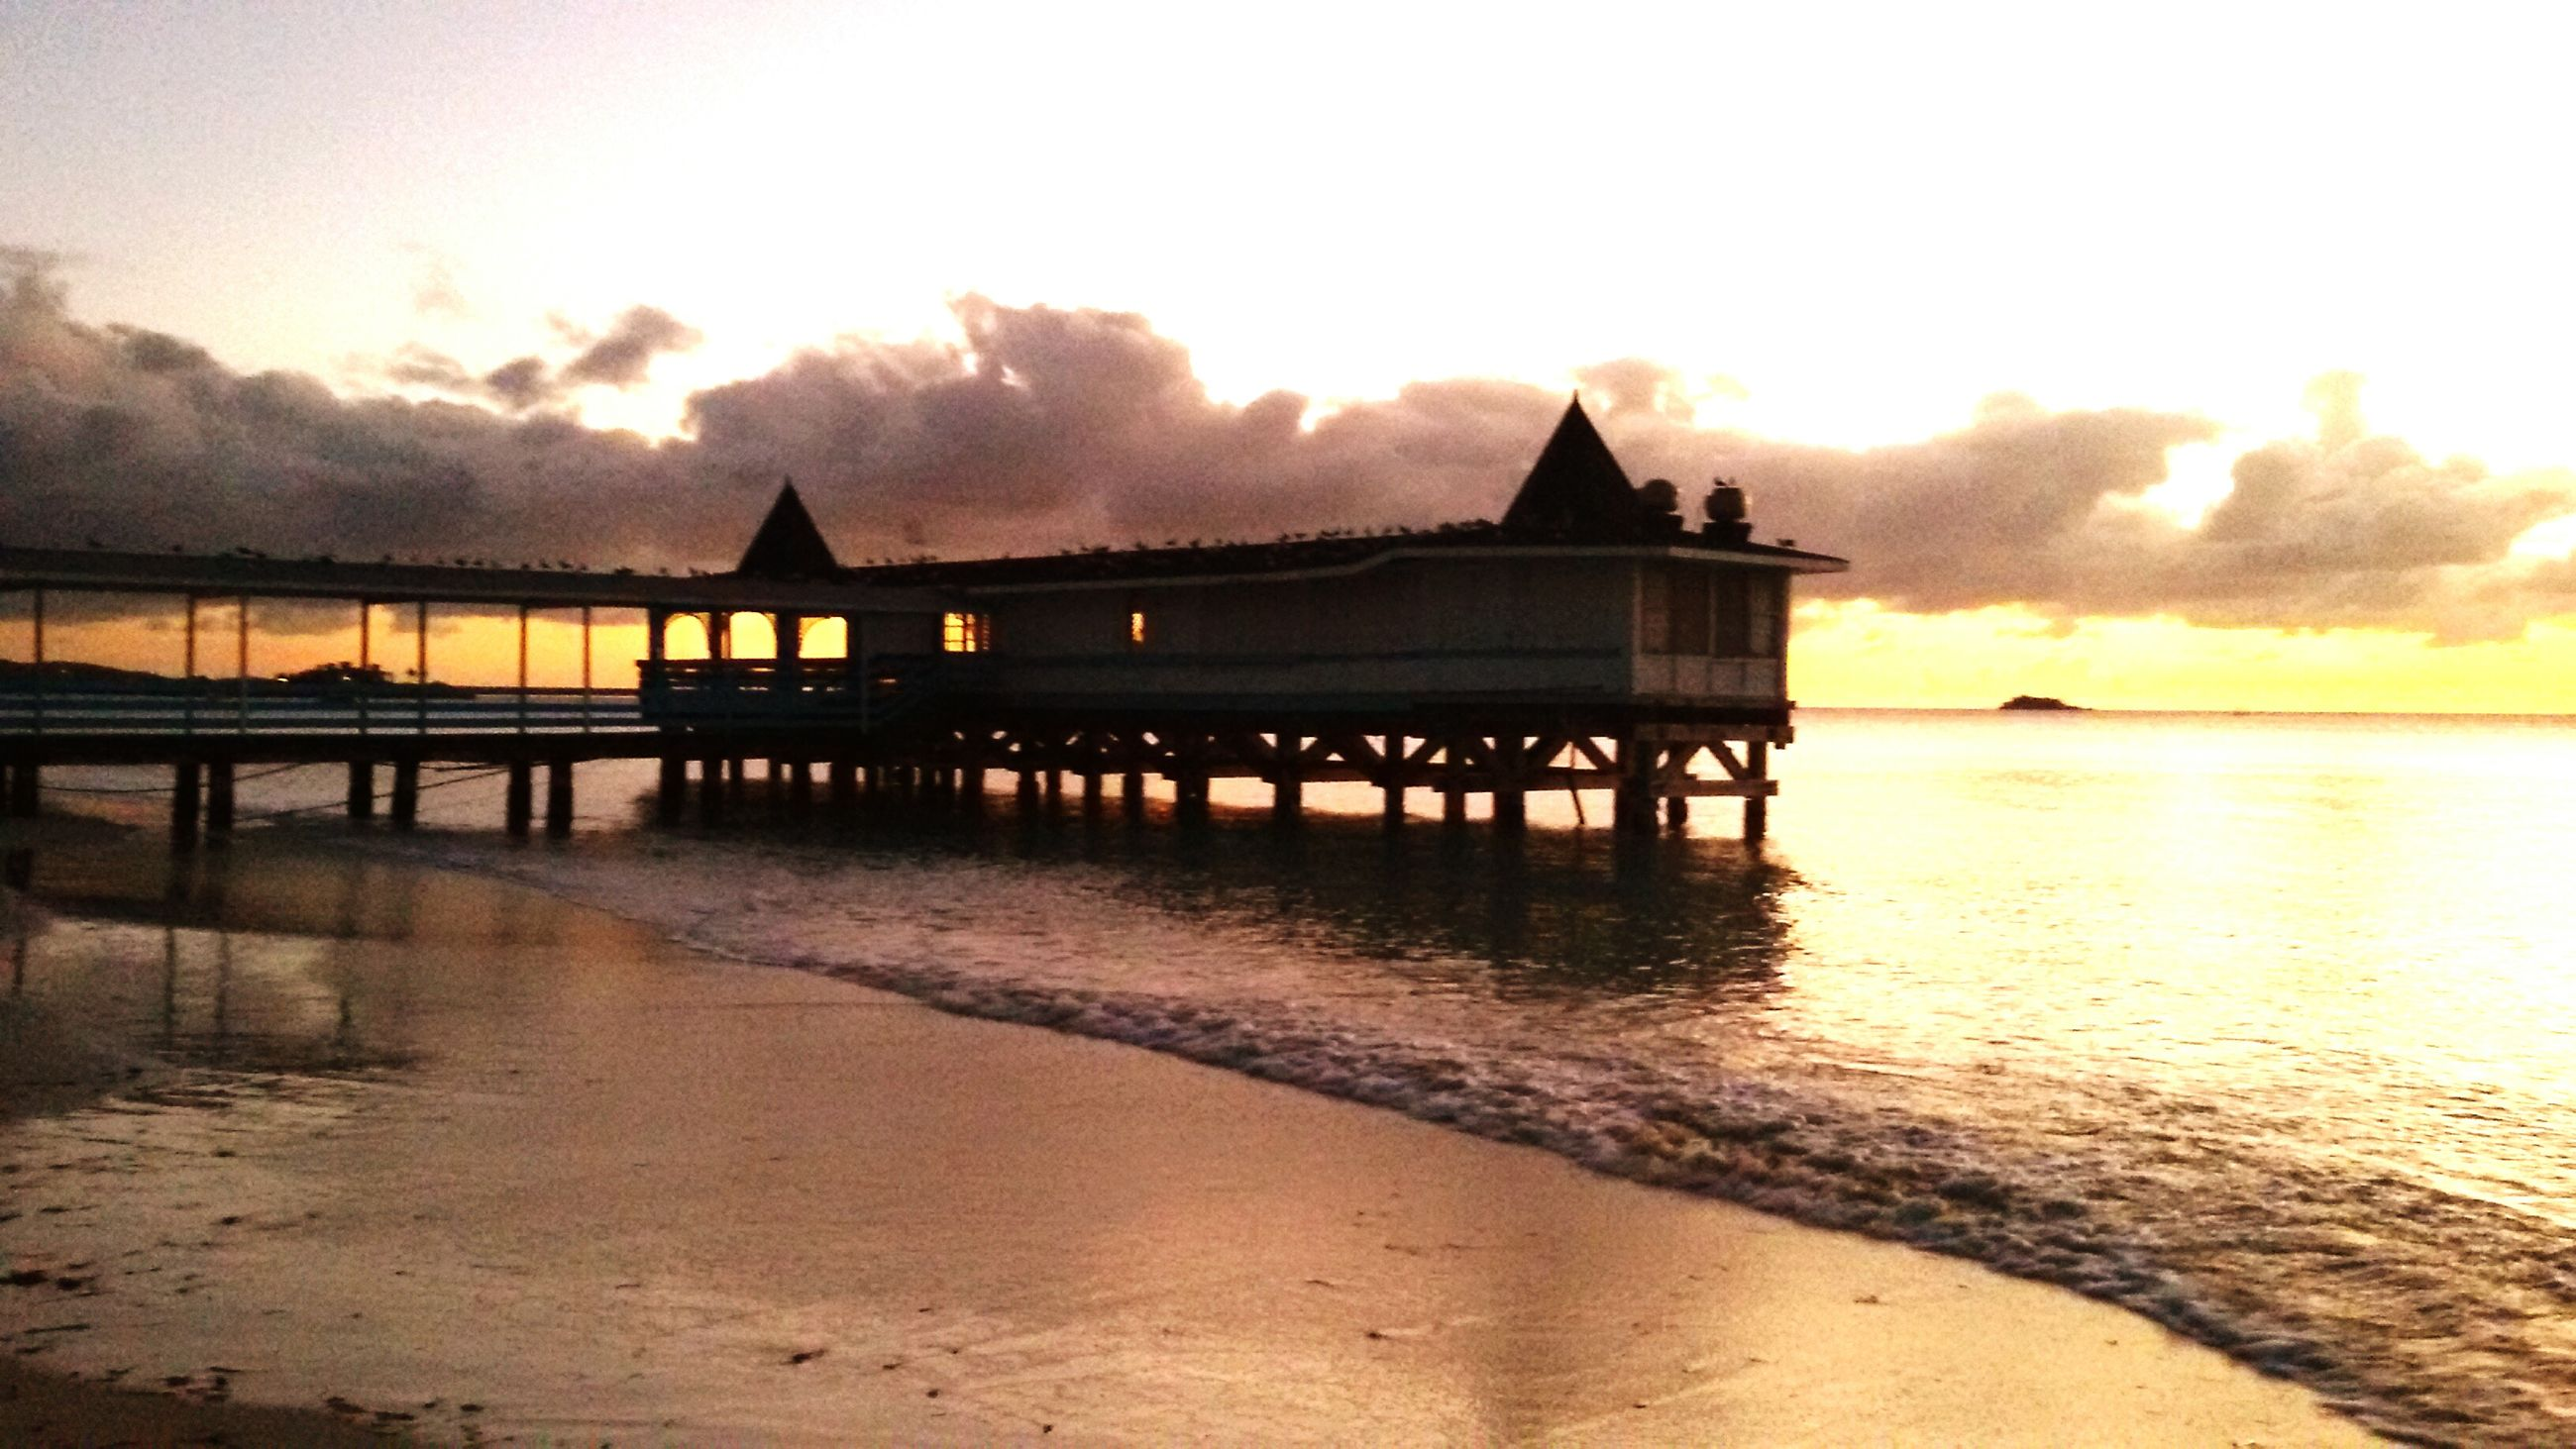 water, sunset, sea, pier, built structure, sky, beach, scenics, architecture, tranquility, tranquil scene, beauty in nature, reflection, silhouette, nature, shore, idyllic, cloud - sky, dusk, orange color